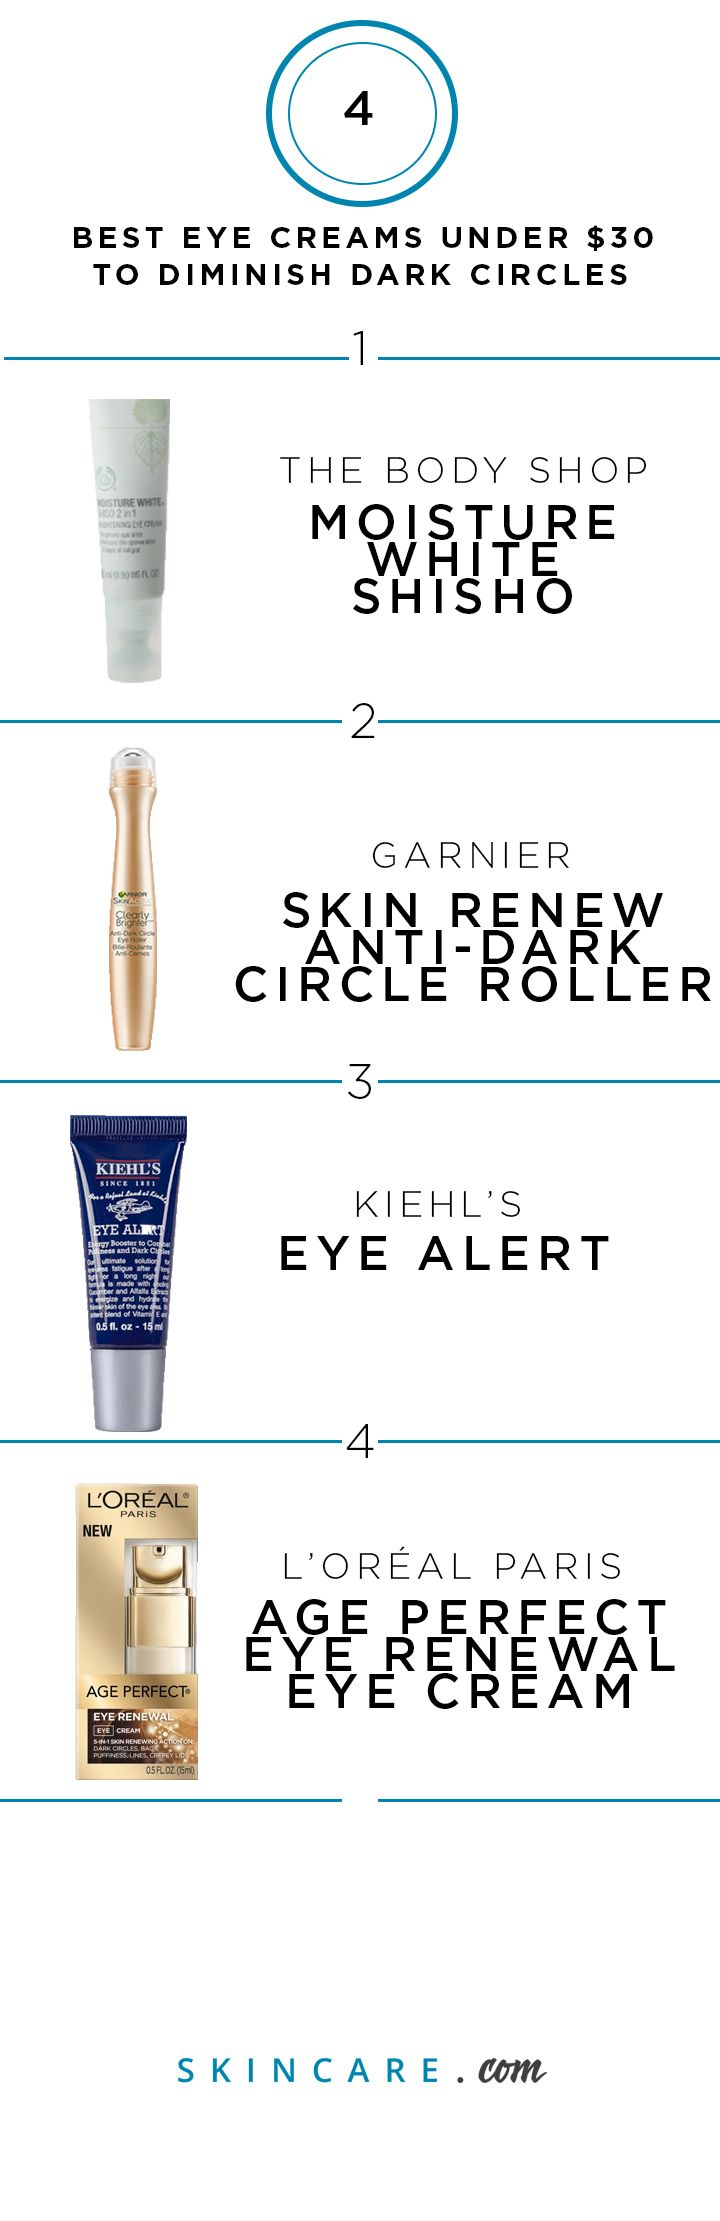 Our Picks Of The Best Eye Creams Under 30 To Visibly Diminish Dark Circles Skincare Com By L Oreal Best Eye Cream Cool Eyes Dark Circle Cream